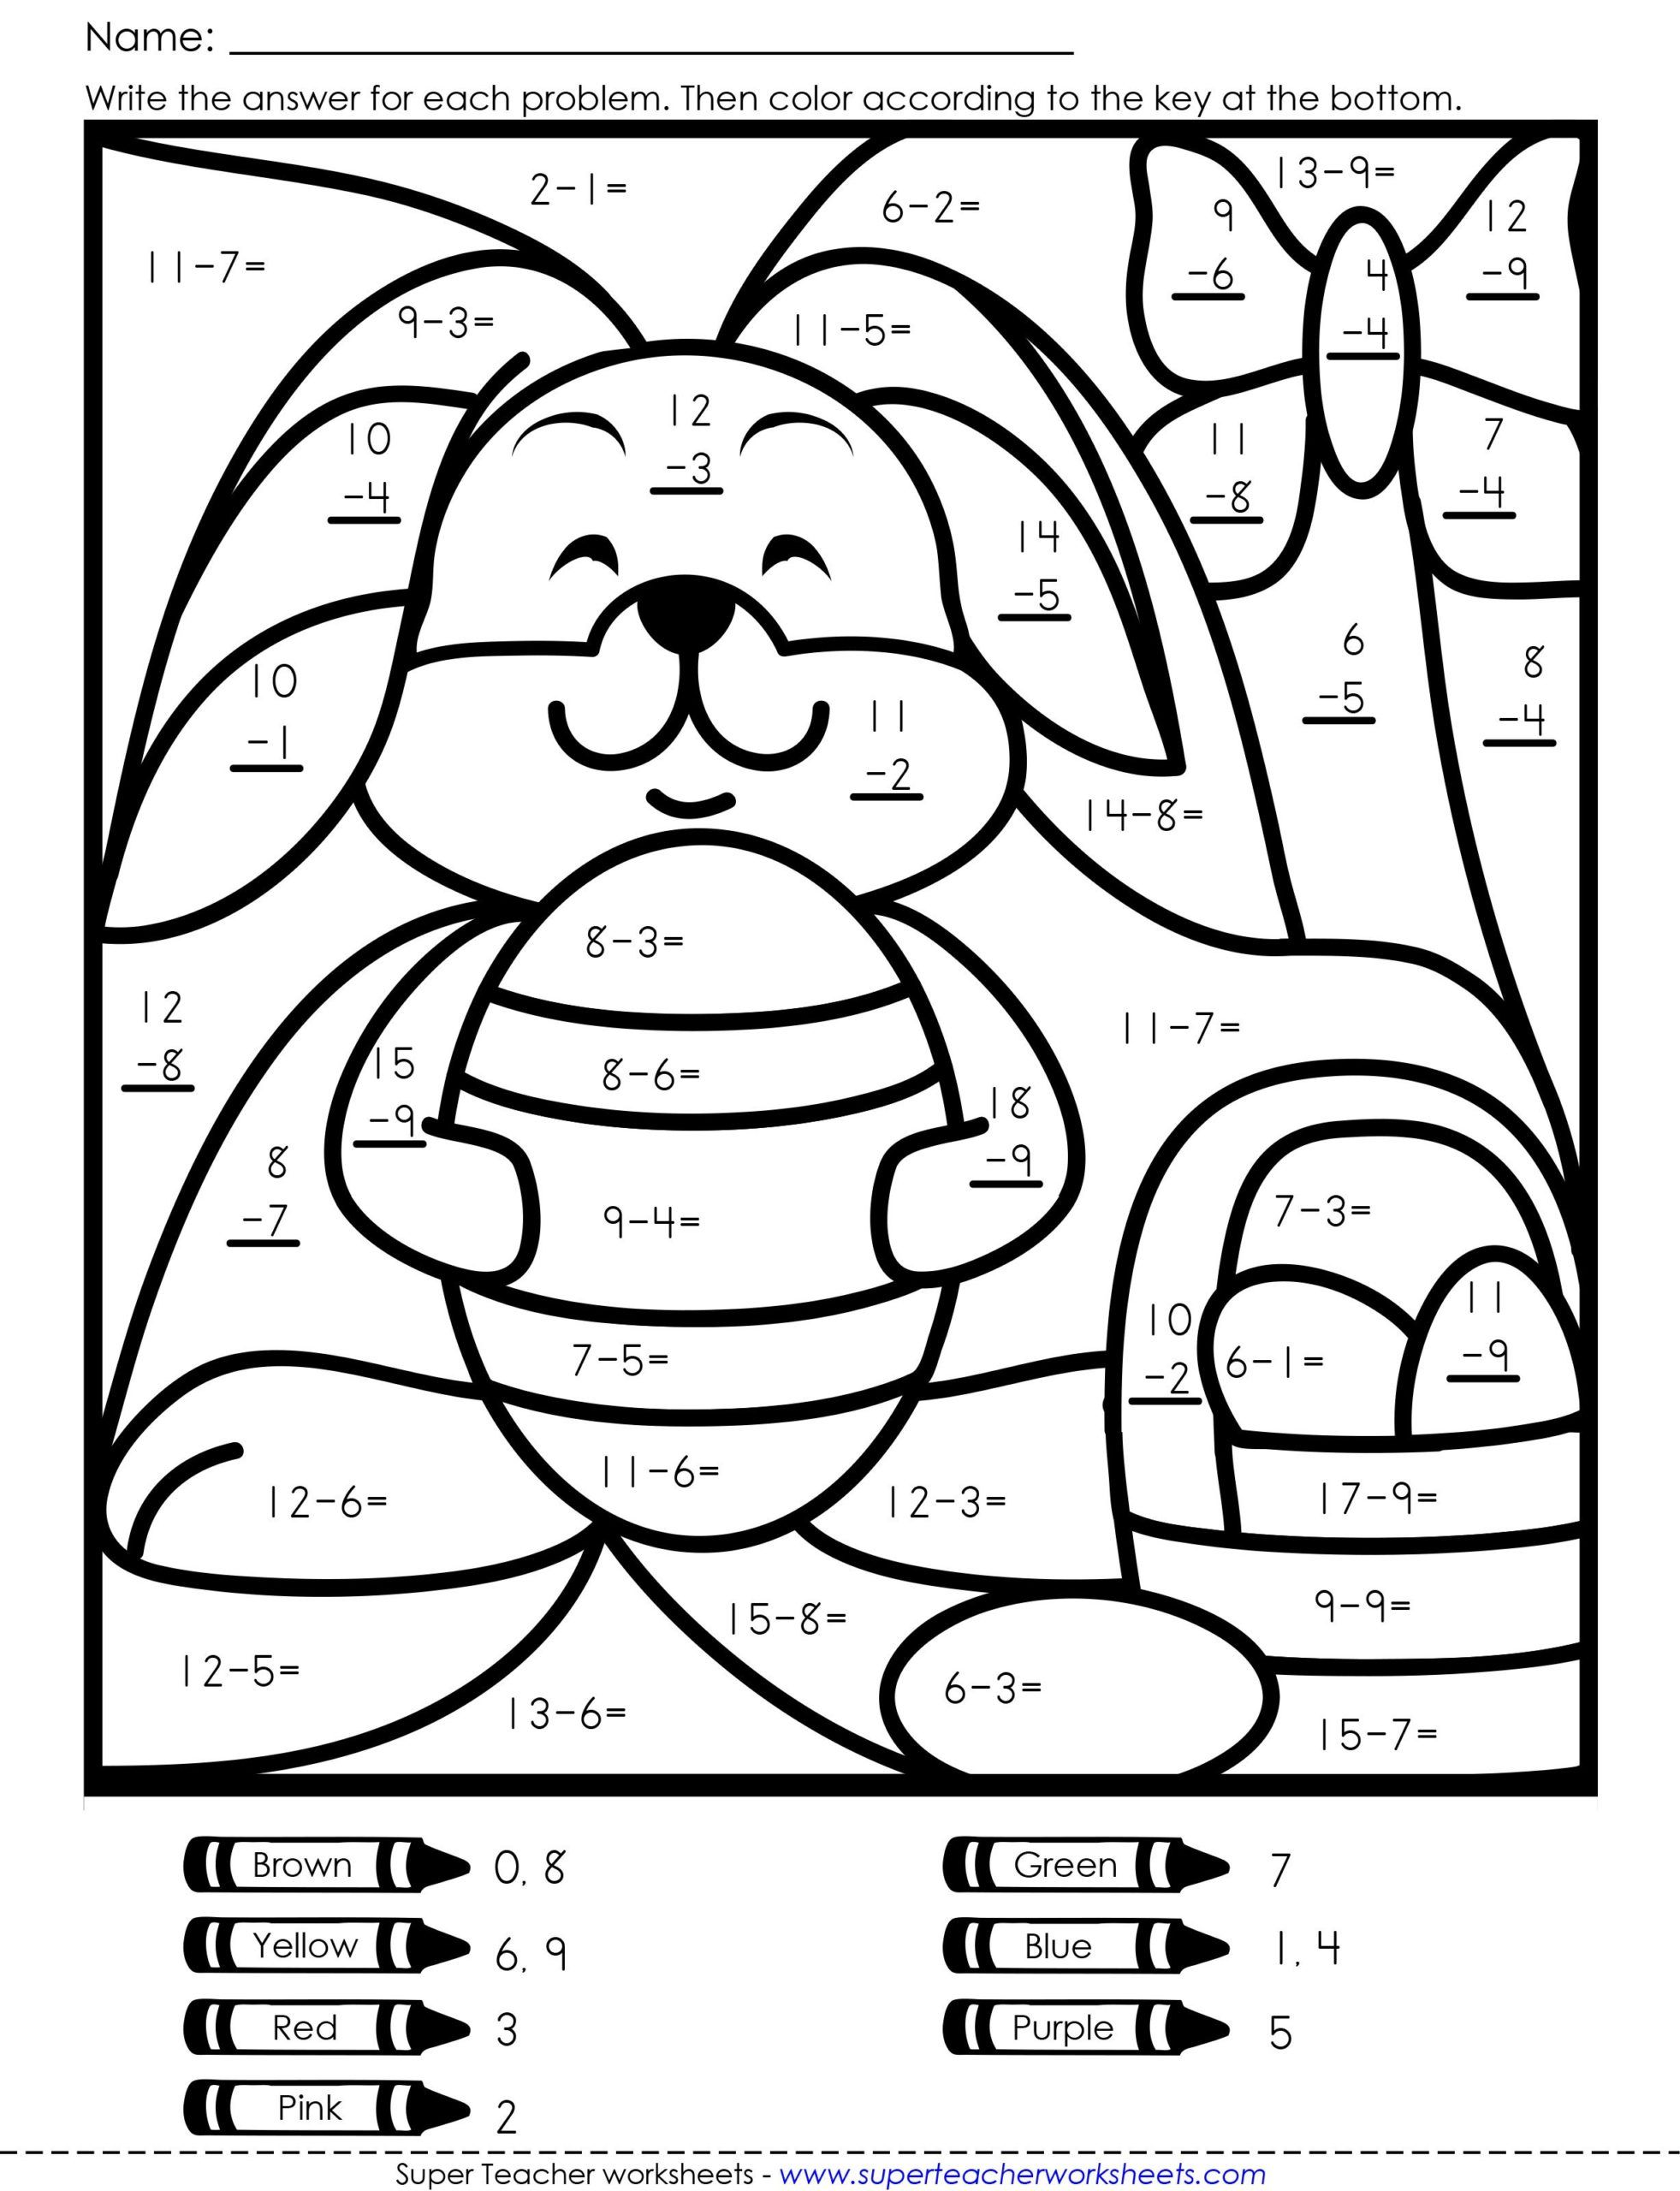 Coloring Addition Worksheets For Grade 1 In